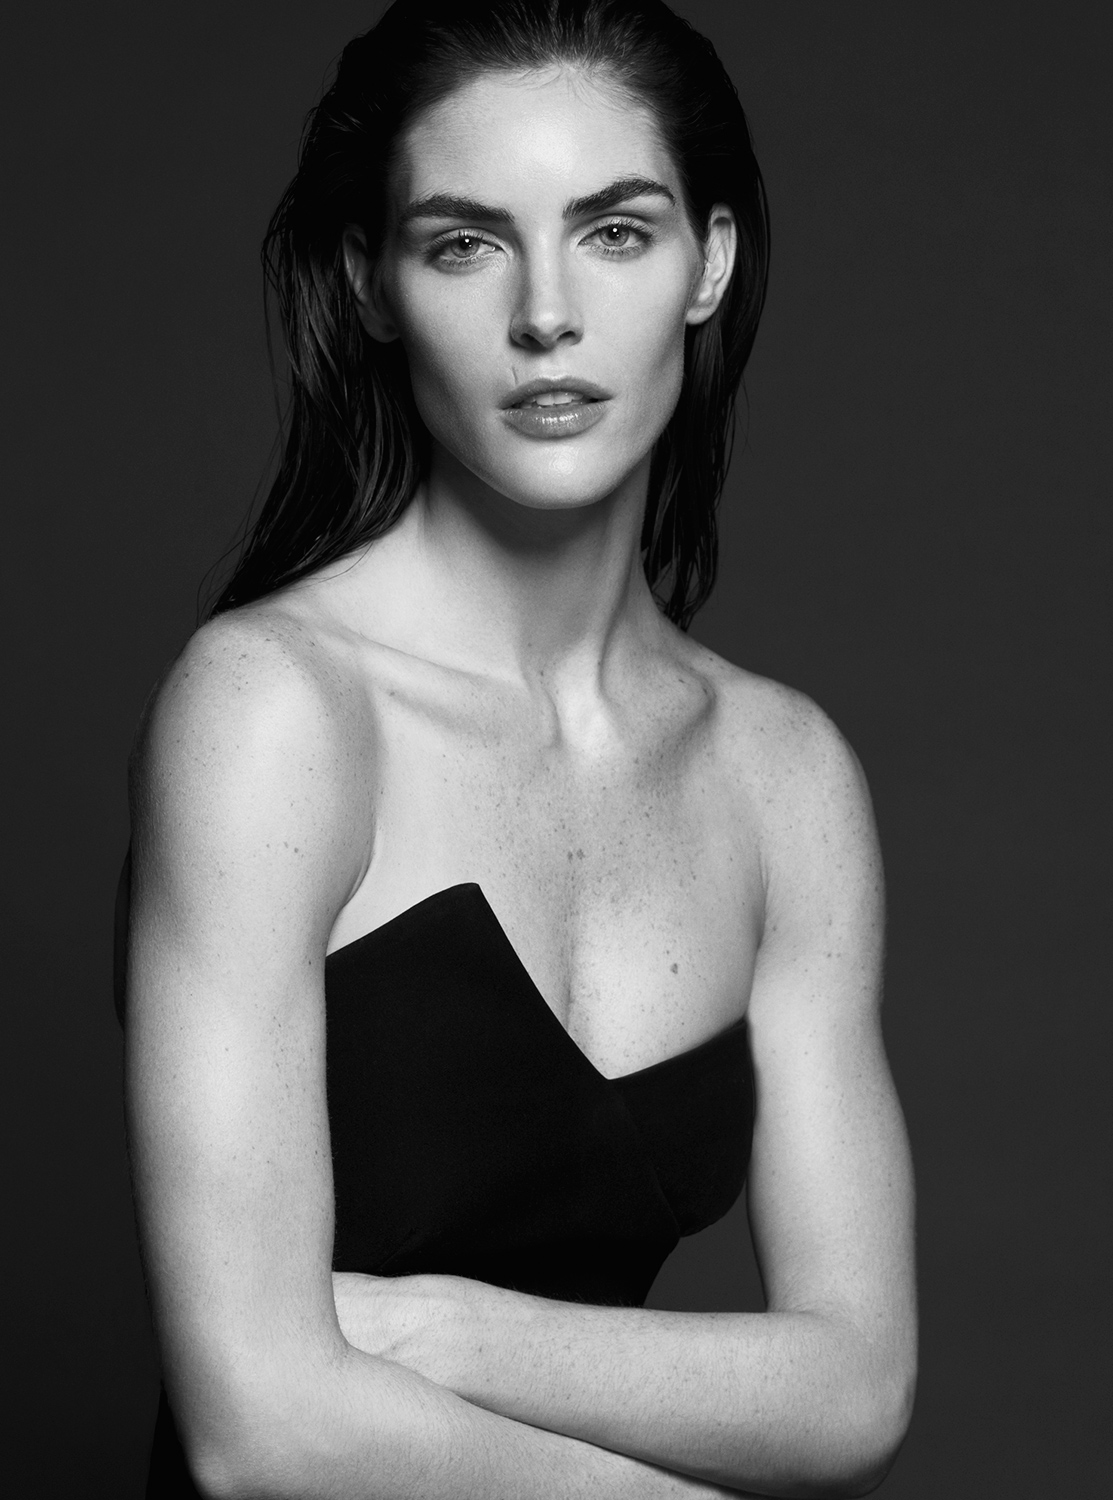 Models And Teen Models: Smile: Hilary Rhoda For Models.com ICONS By Santiago